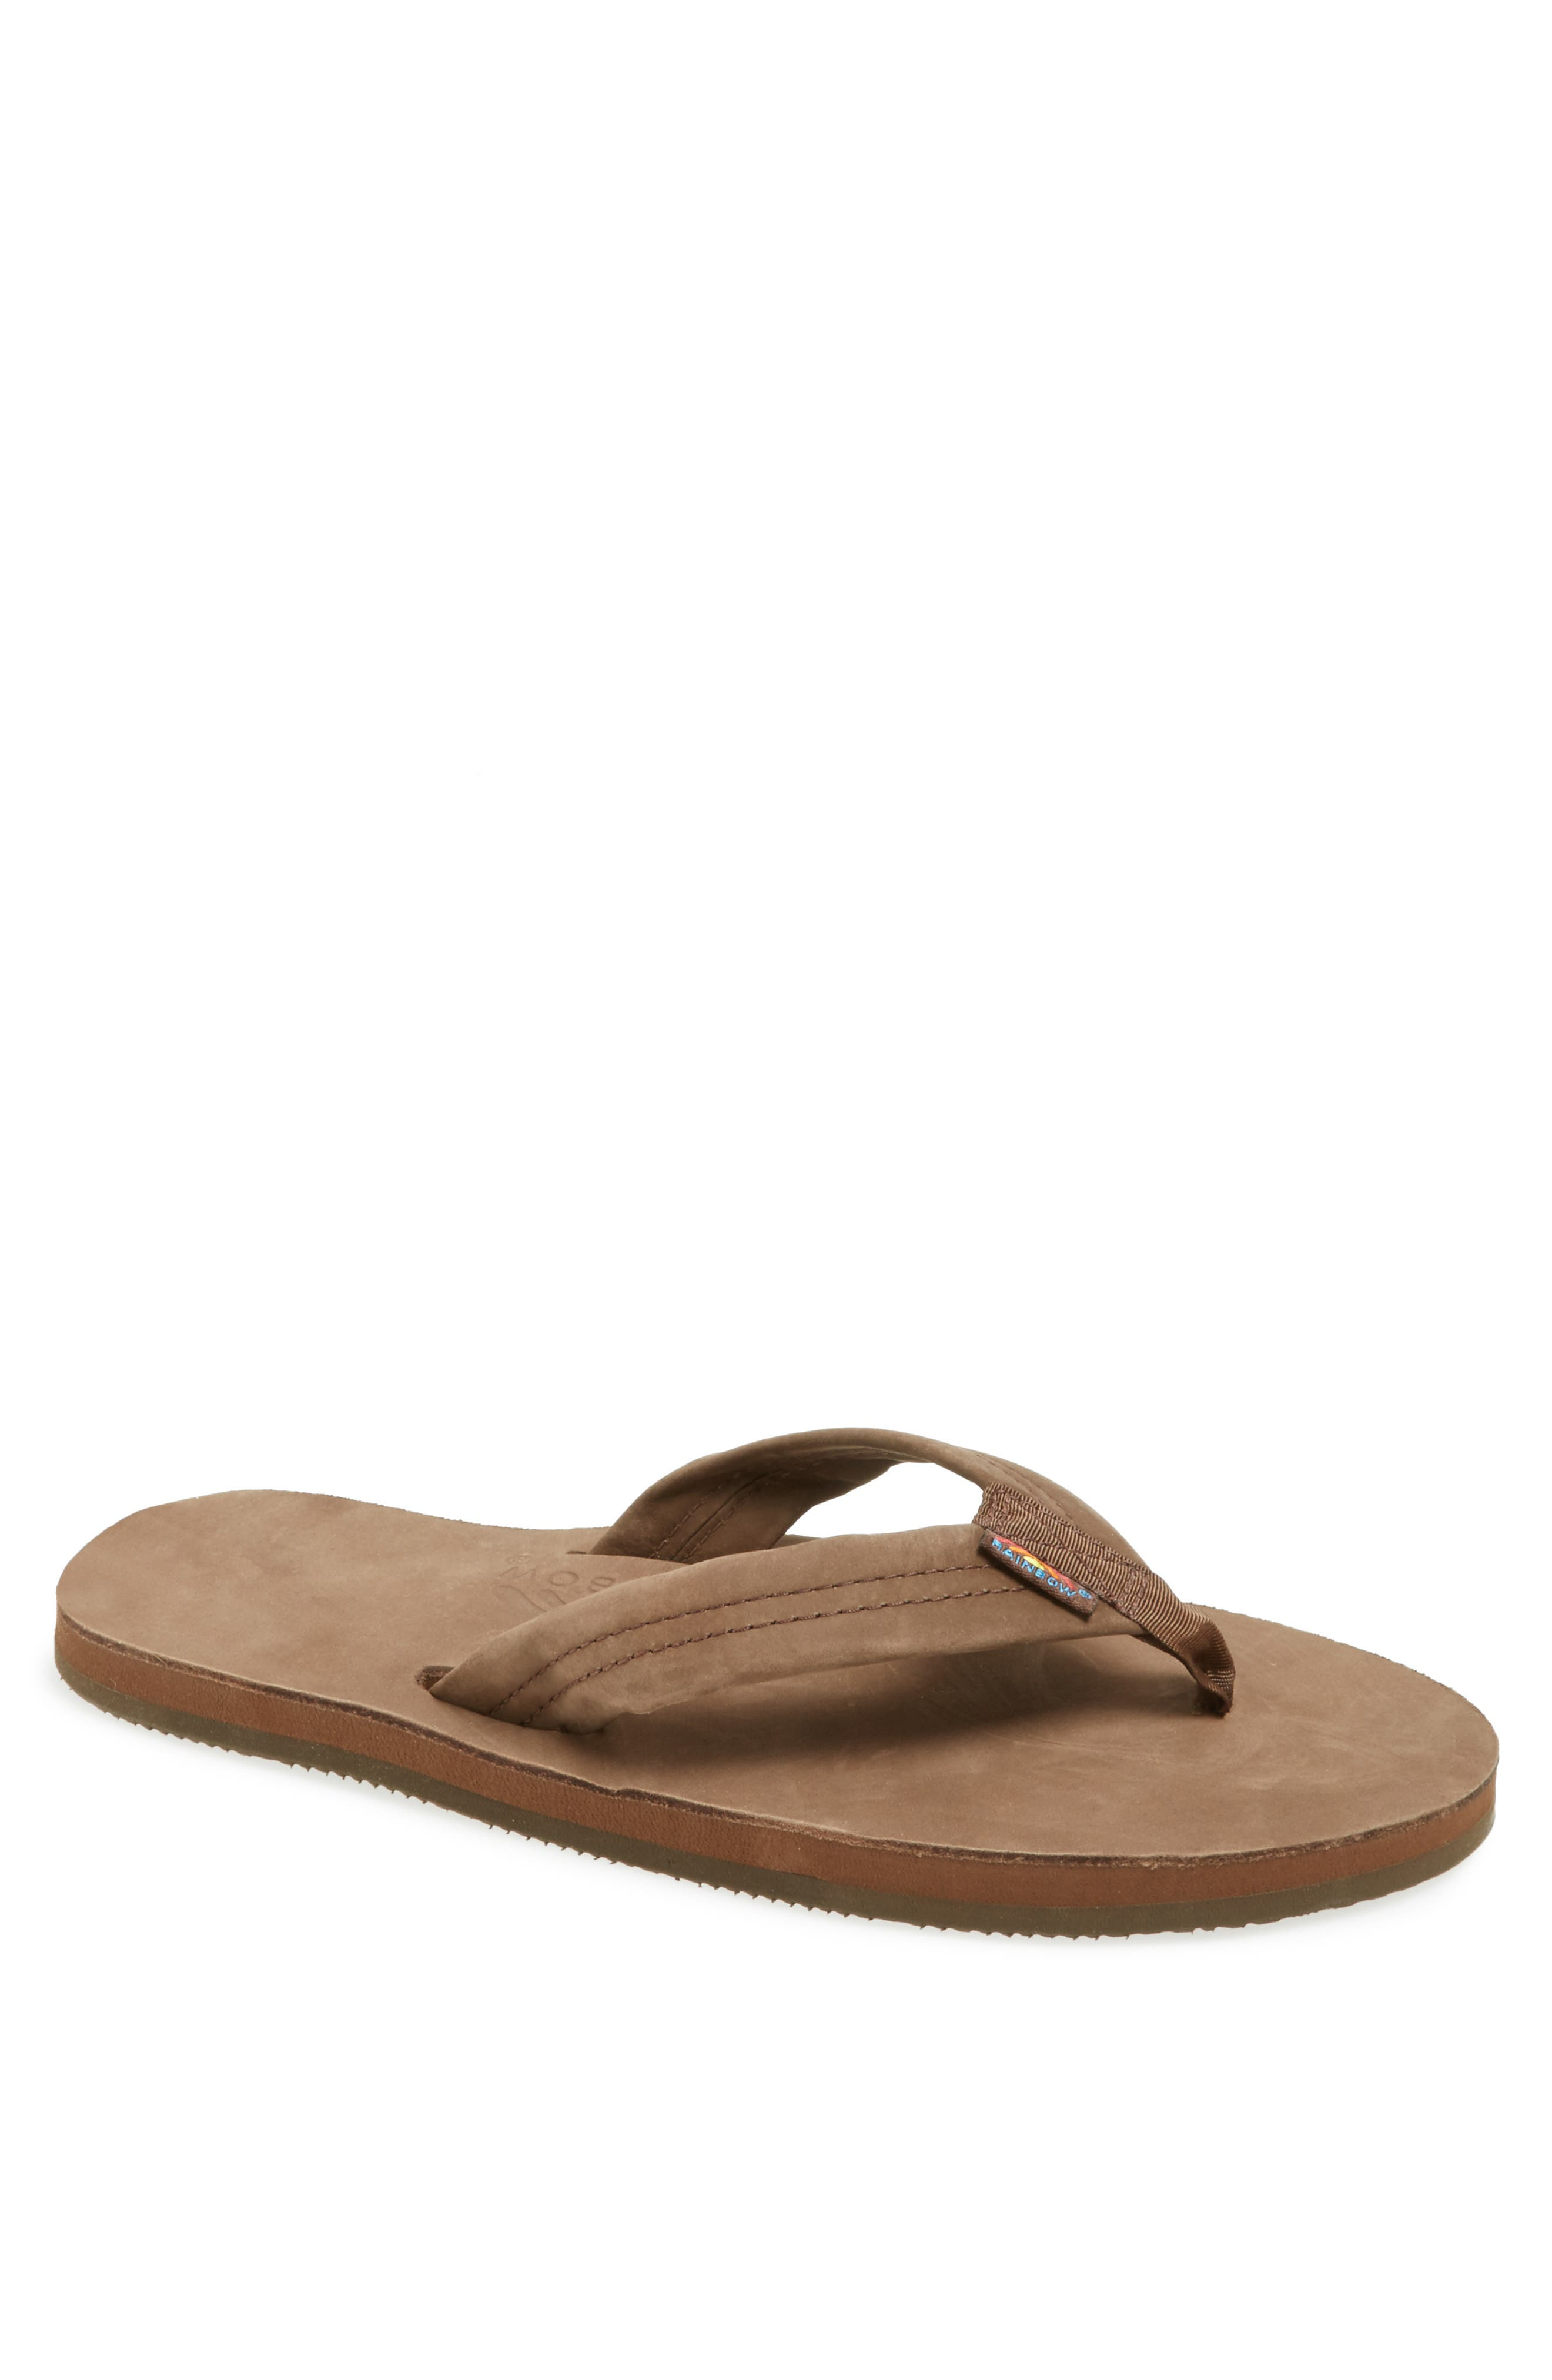 Outdoor Mens Leather Sandals Slippers Summer Casual Beach Shoes Size 10 11 12 13